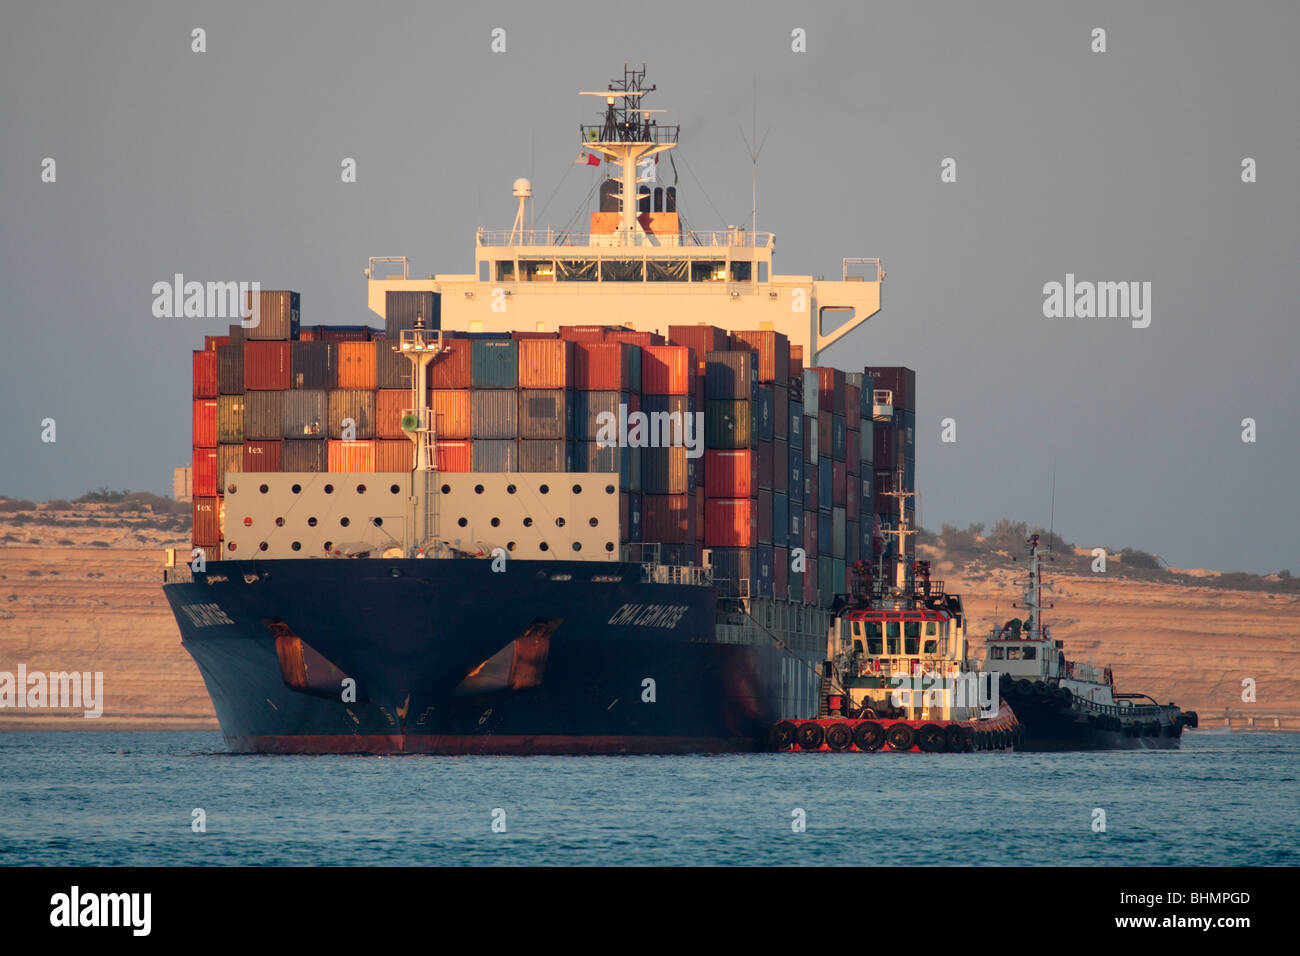 International trade by sea transport. The container ship CMA CGM Rose accompanied by tugboats as it enters the Malta - Stock Image